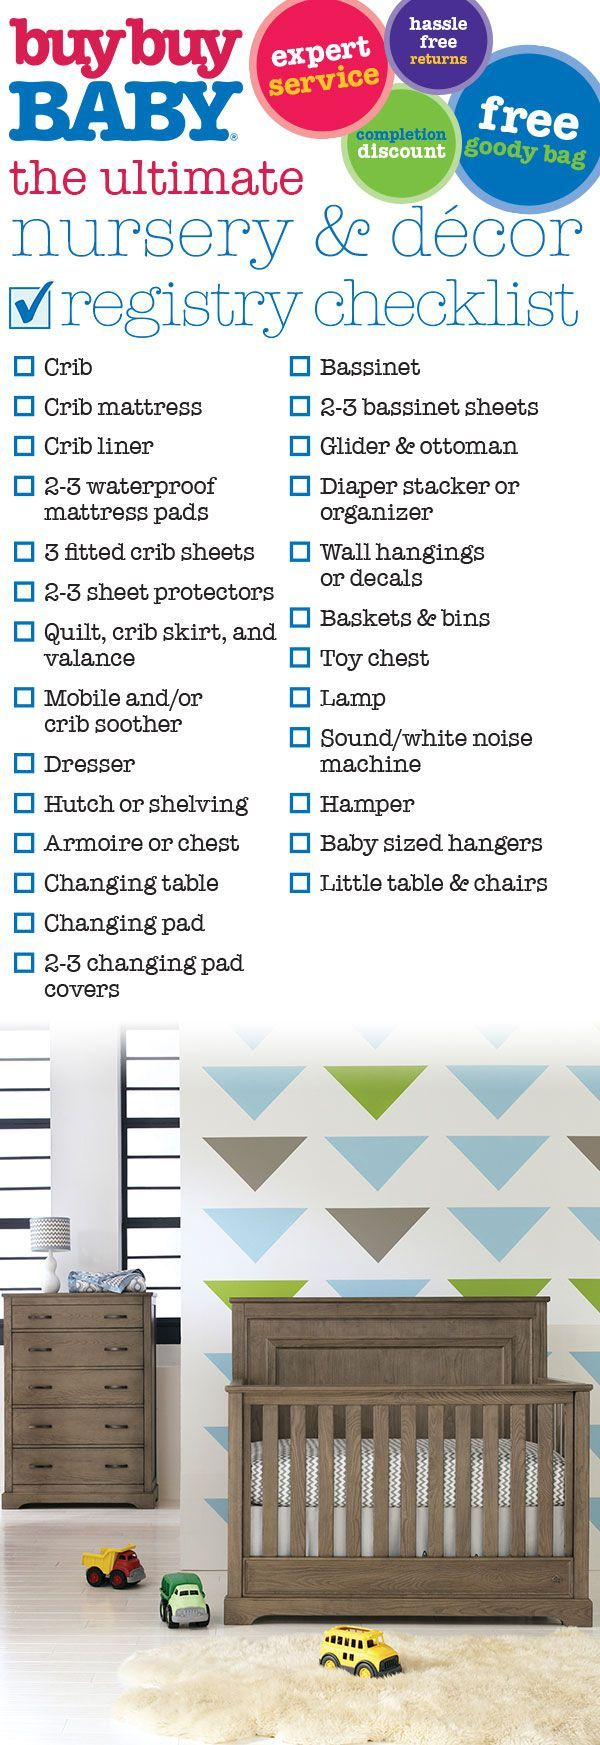 Whether you live in a modern loft or a classic colonial, buybuy BABY has the nursery décor to fit your style, along with the essentials you need to make your baby's room as functional as it is beautiful. Register today, and use this checklist to ensure you have all the bases covered in your baby's first room!